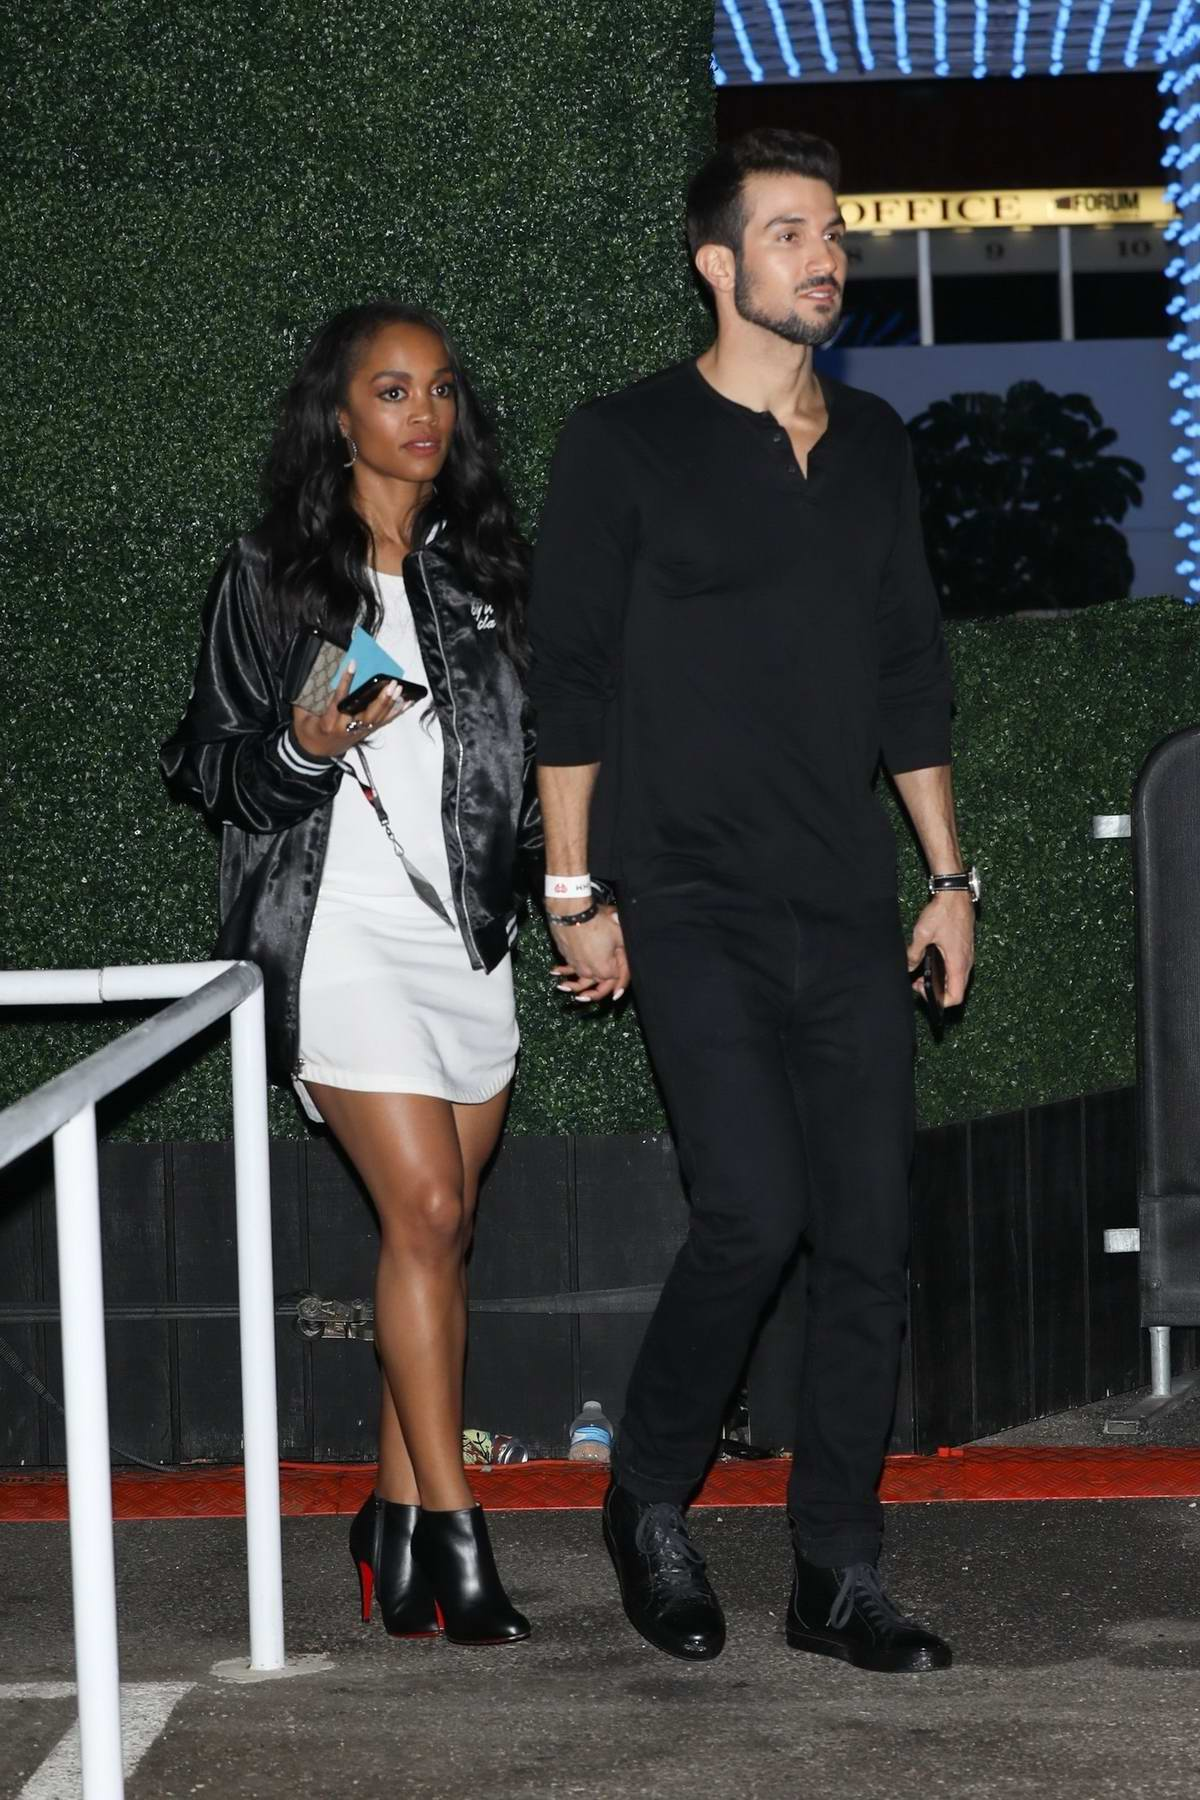 Rachel Lindsay and Bryan Abasolo show off their love at Jingle Ball 2017 at The Forum in Inglewood, California